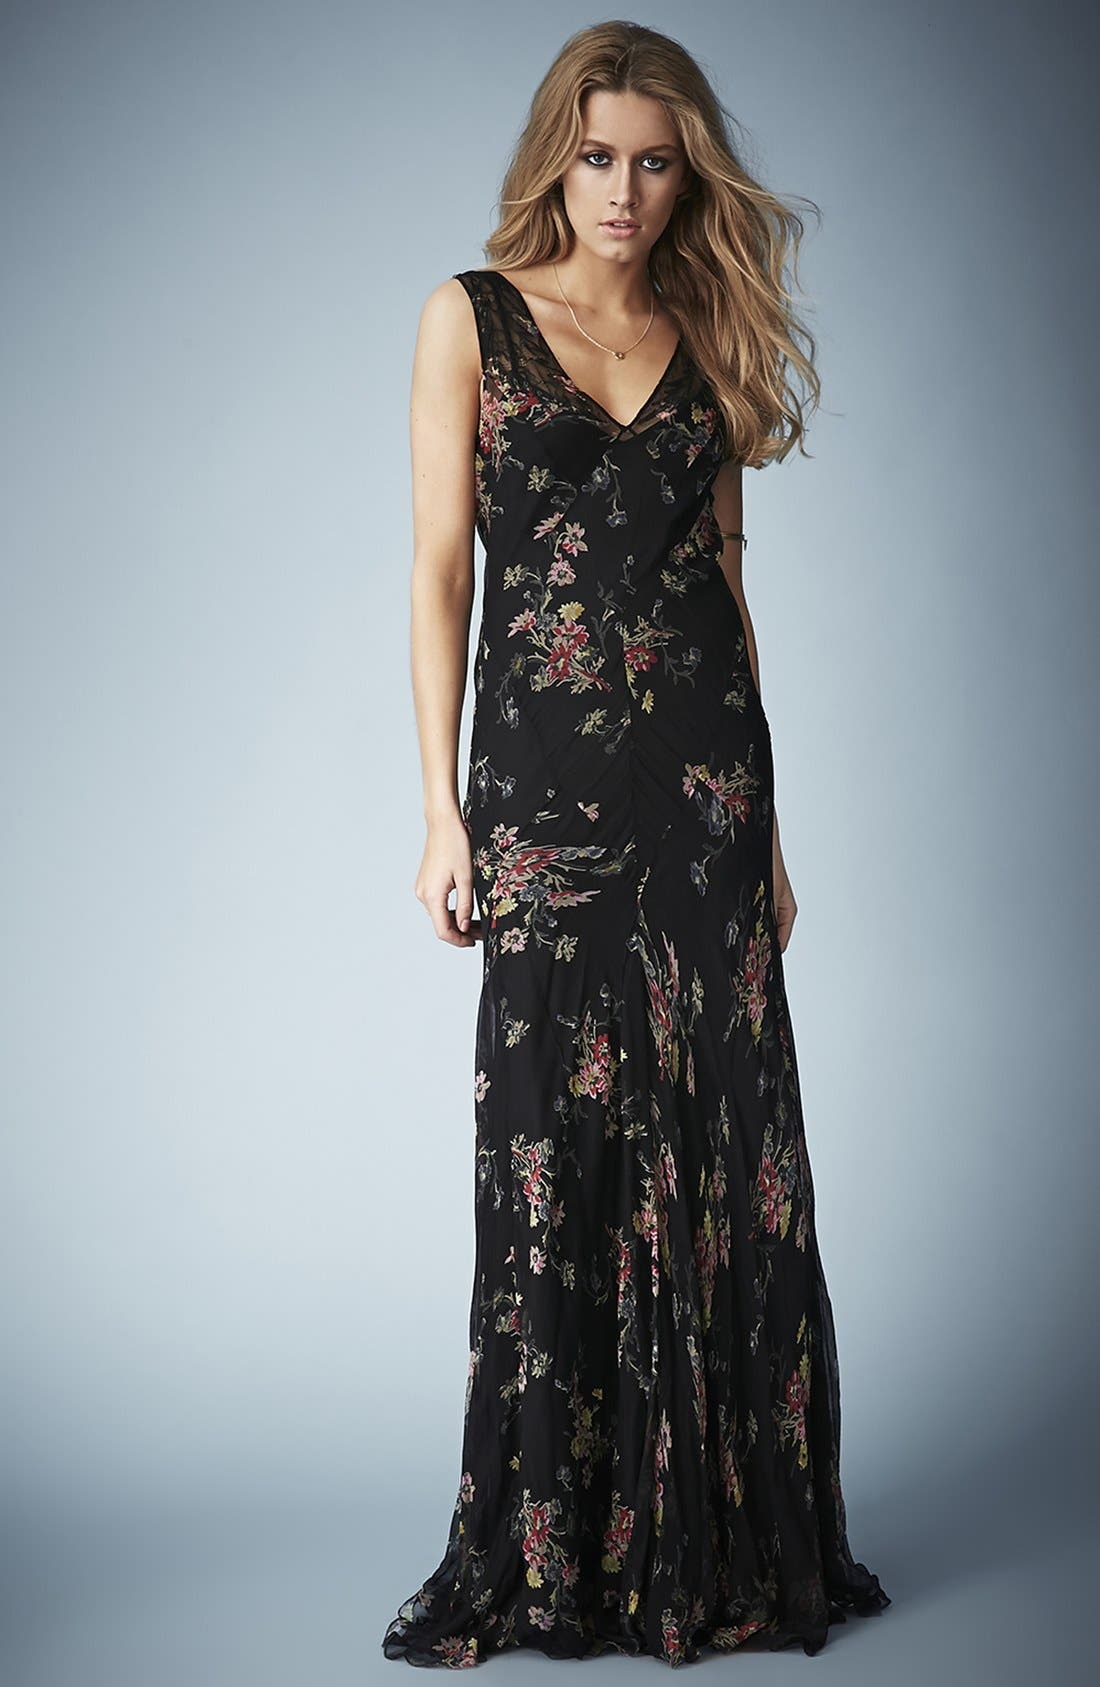 Alternate Image 1 Selected - Kate Moss for Topshop Floral Chiffon Maxi Dress